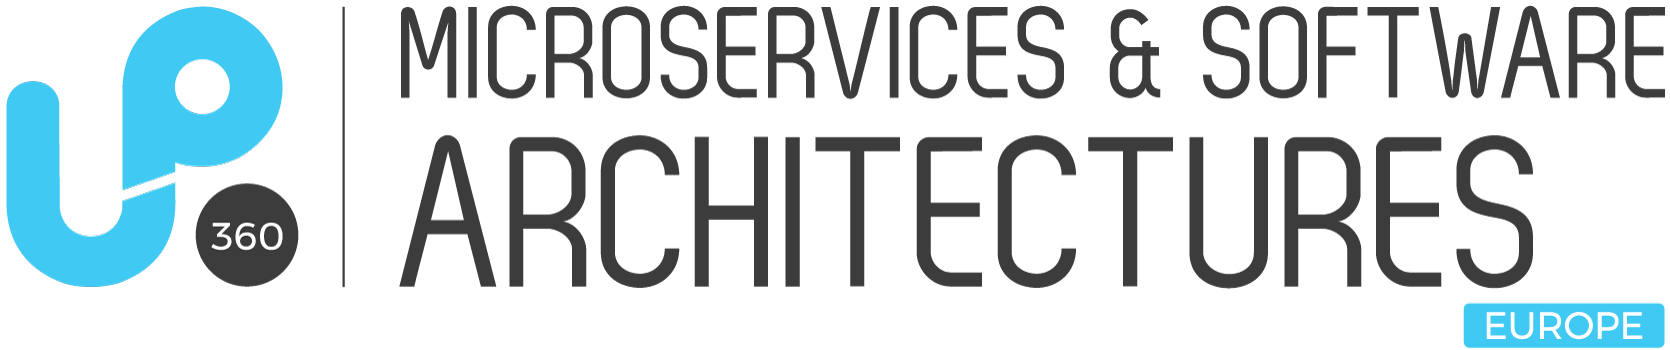 ScaleUp 360° 2. Microservices & Software Architectures